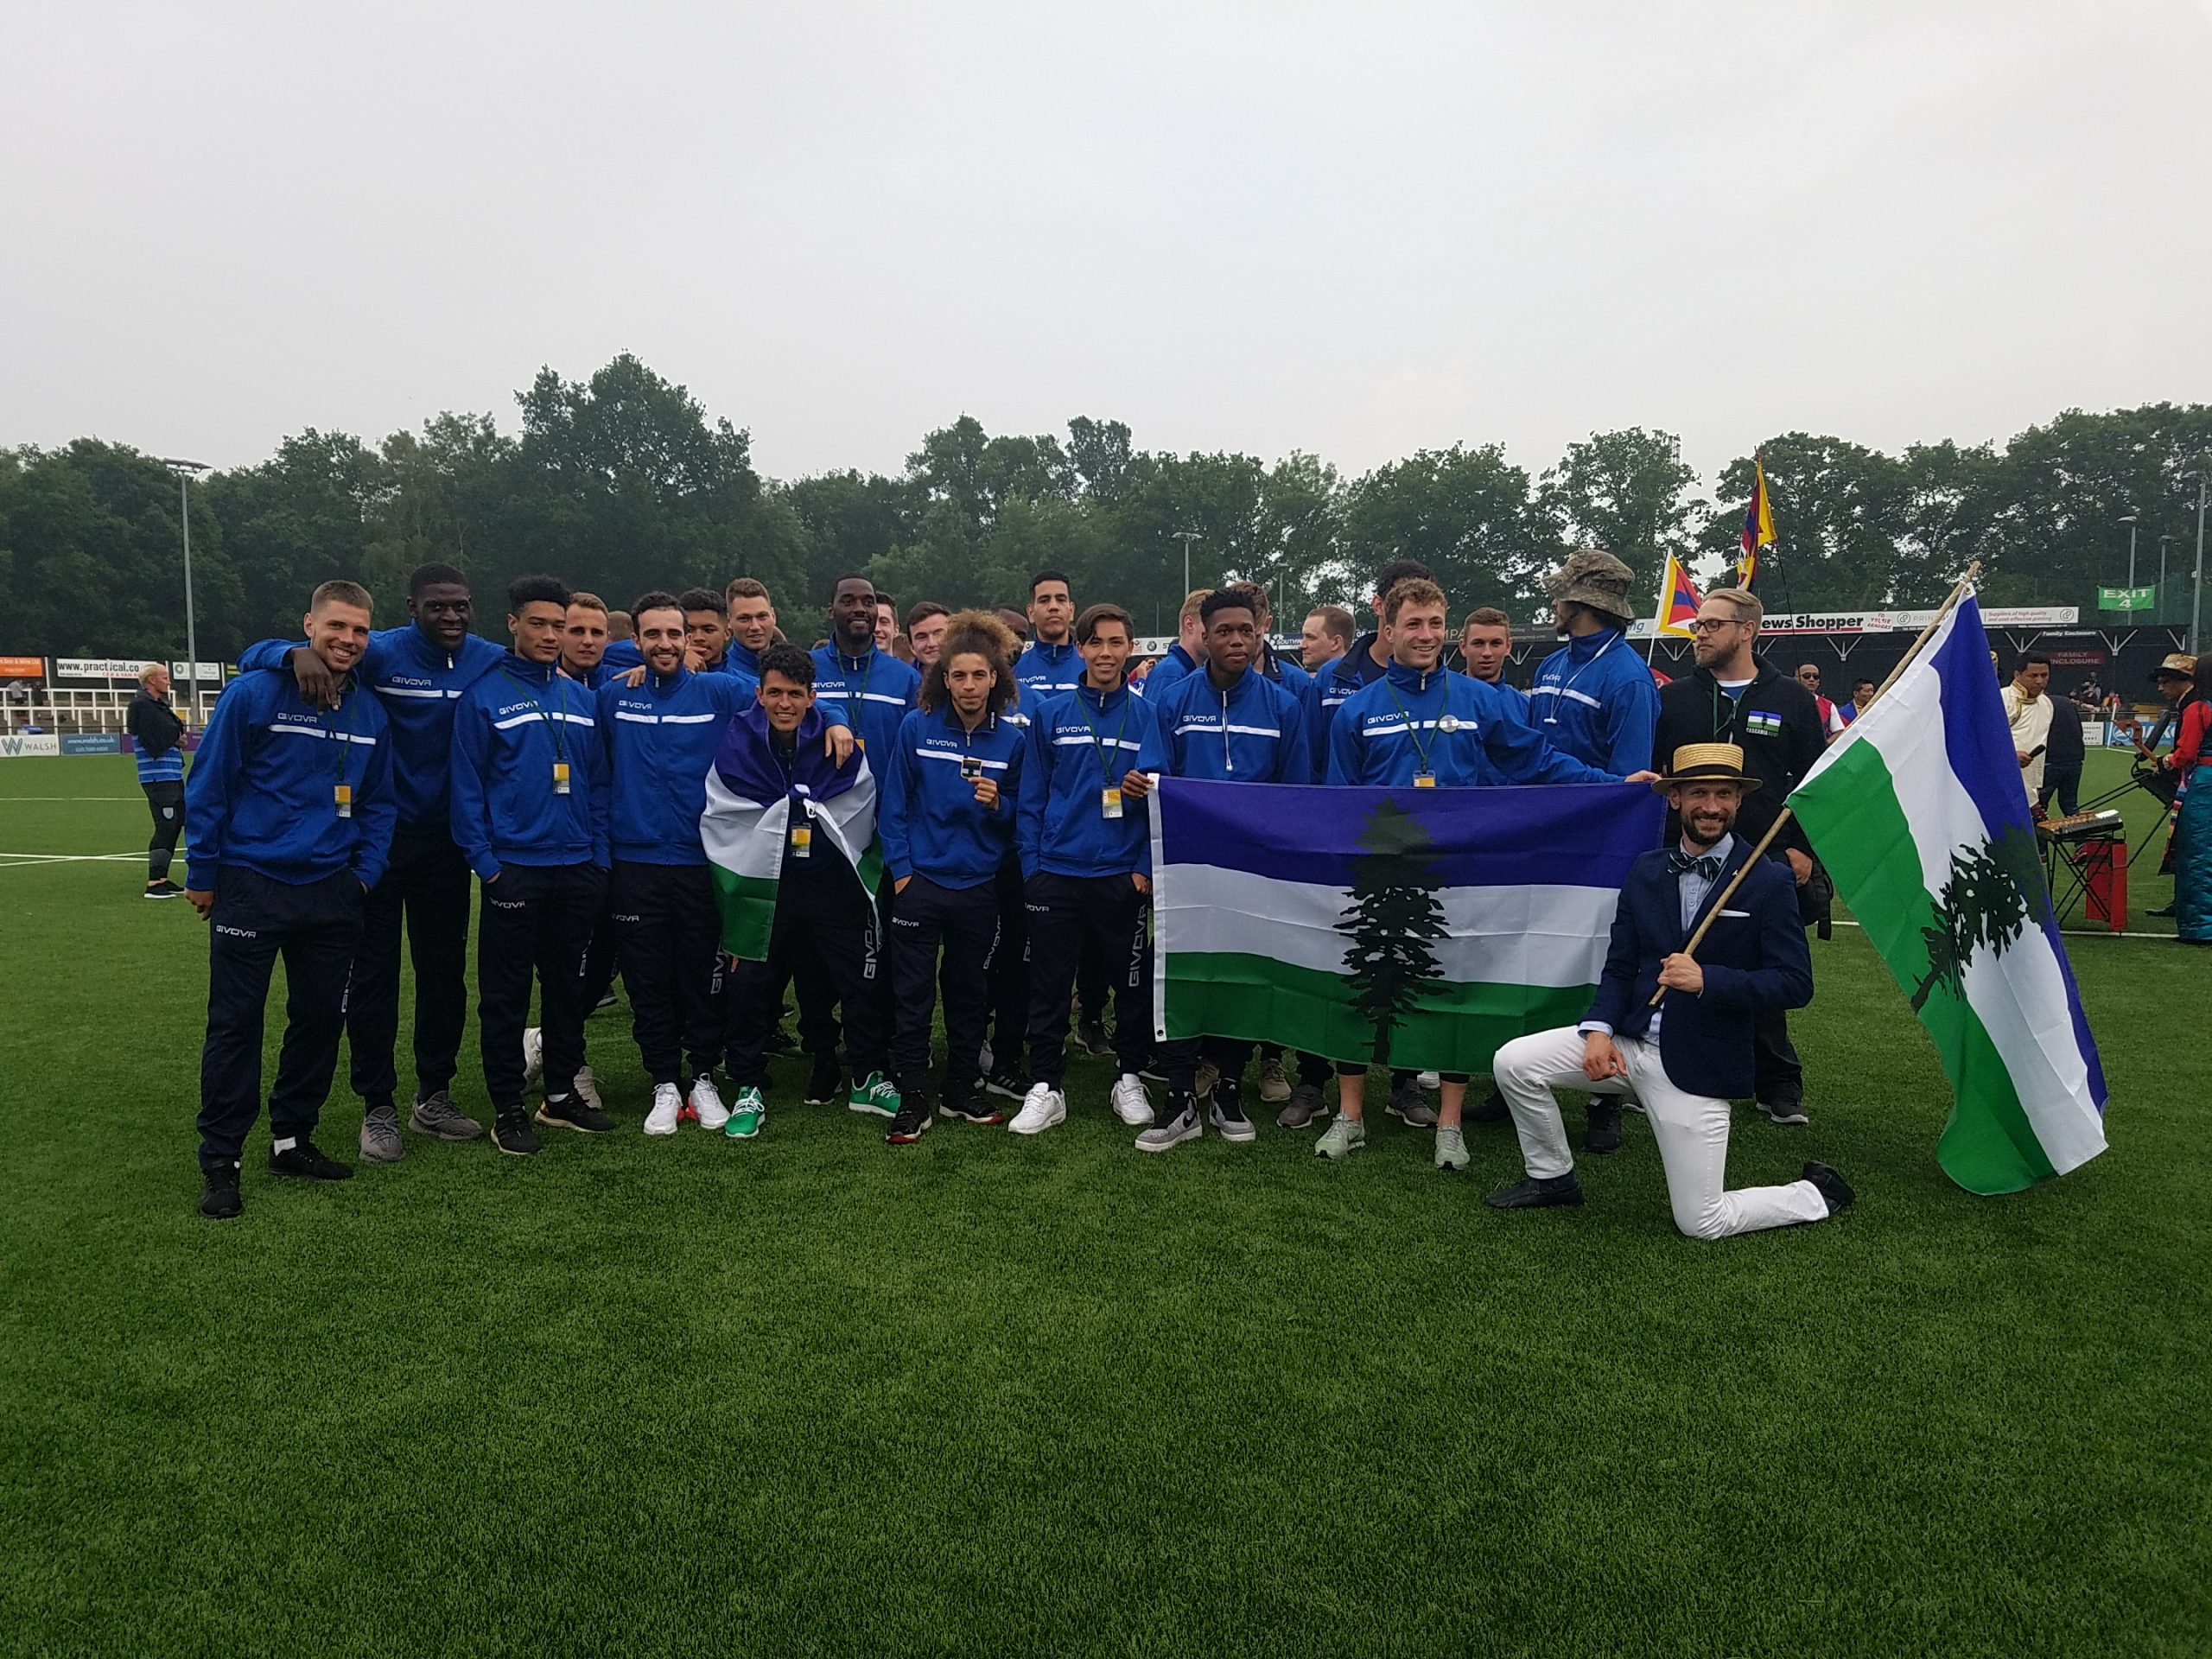 Team Cascadia huddled together after marching in the opening ceremonies of the CONIFA World Football Cup 2018